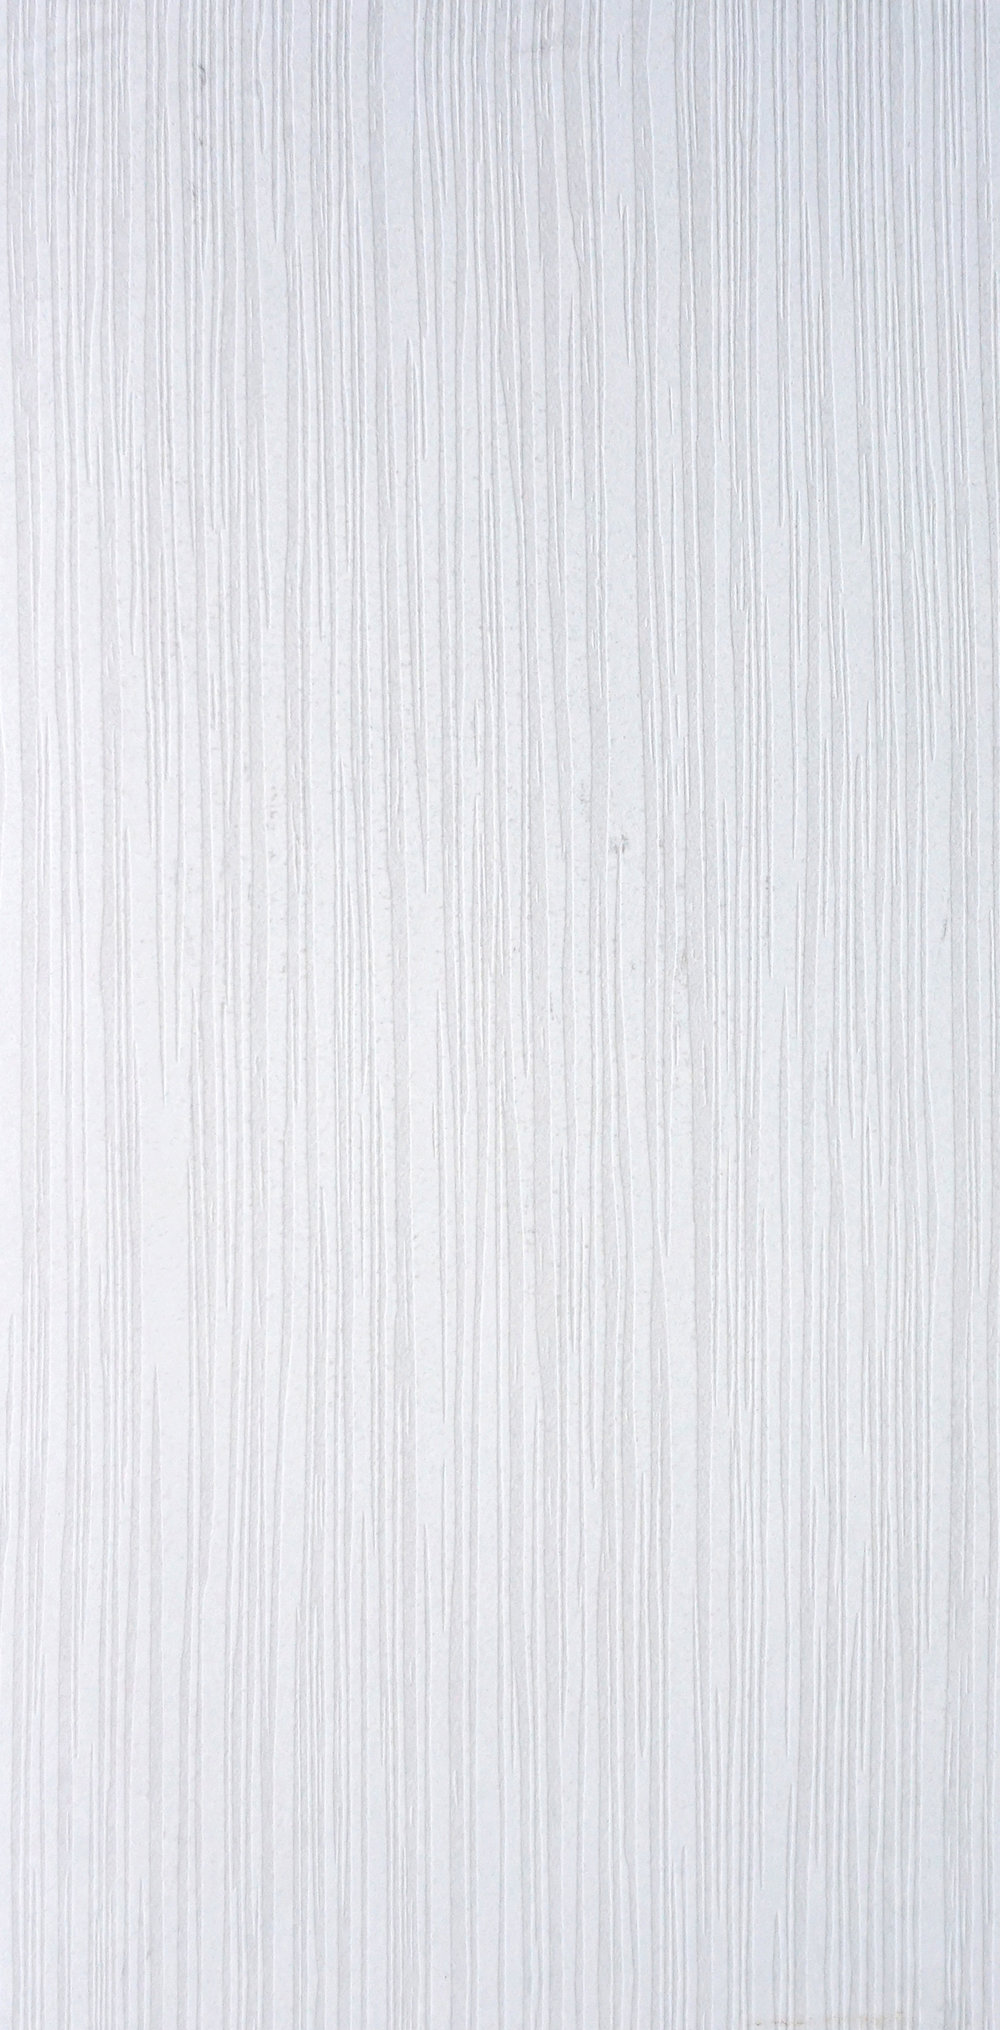 "CASCADE WHITE 12""X24"" - GLAZED PORCELAIN 8 PC/CTN (15.5 SF); 40 CTN/PLT"